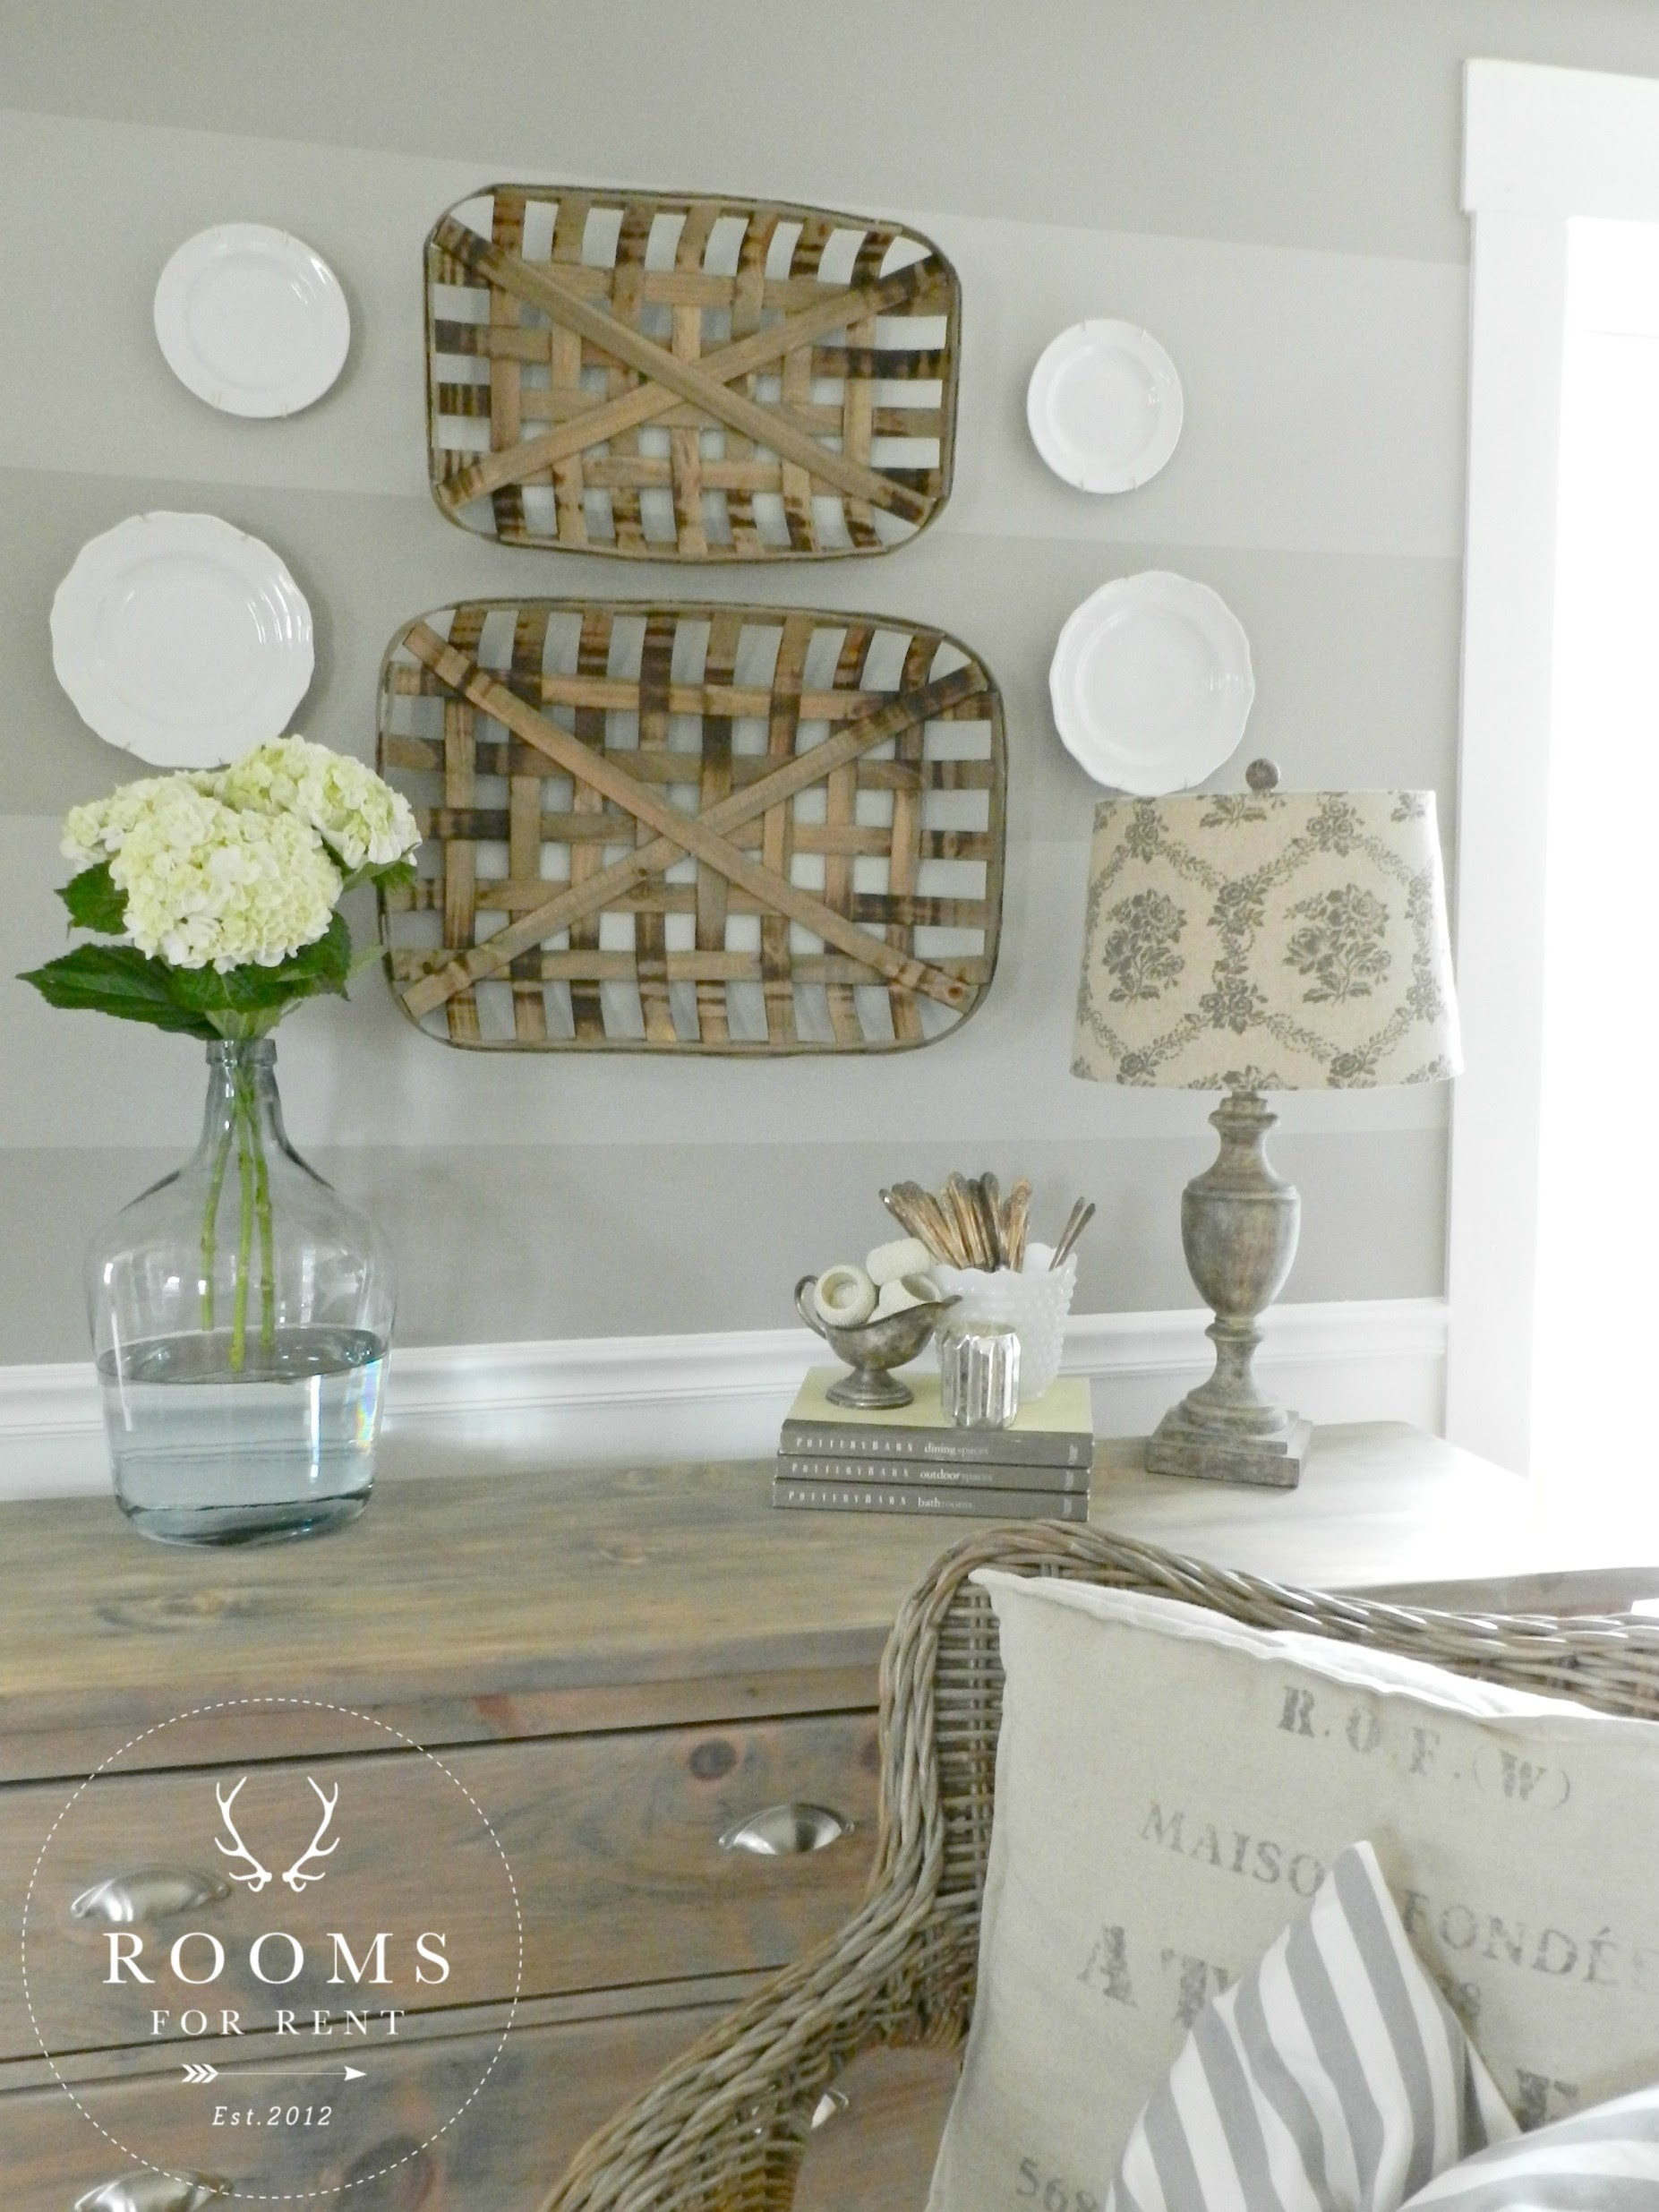 Tobacco Baskets wall decor & a Giveaway! - Rooms For Rent blog